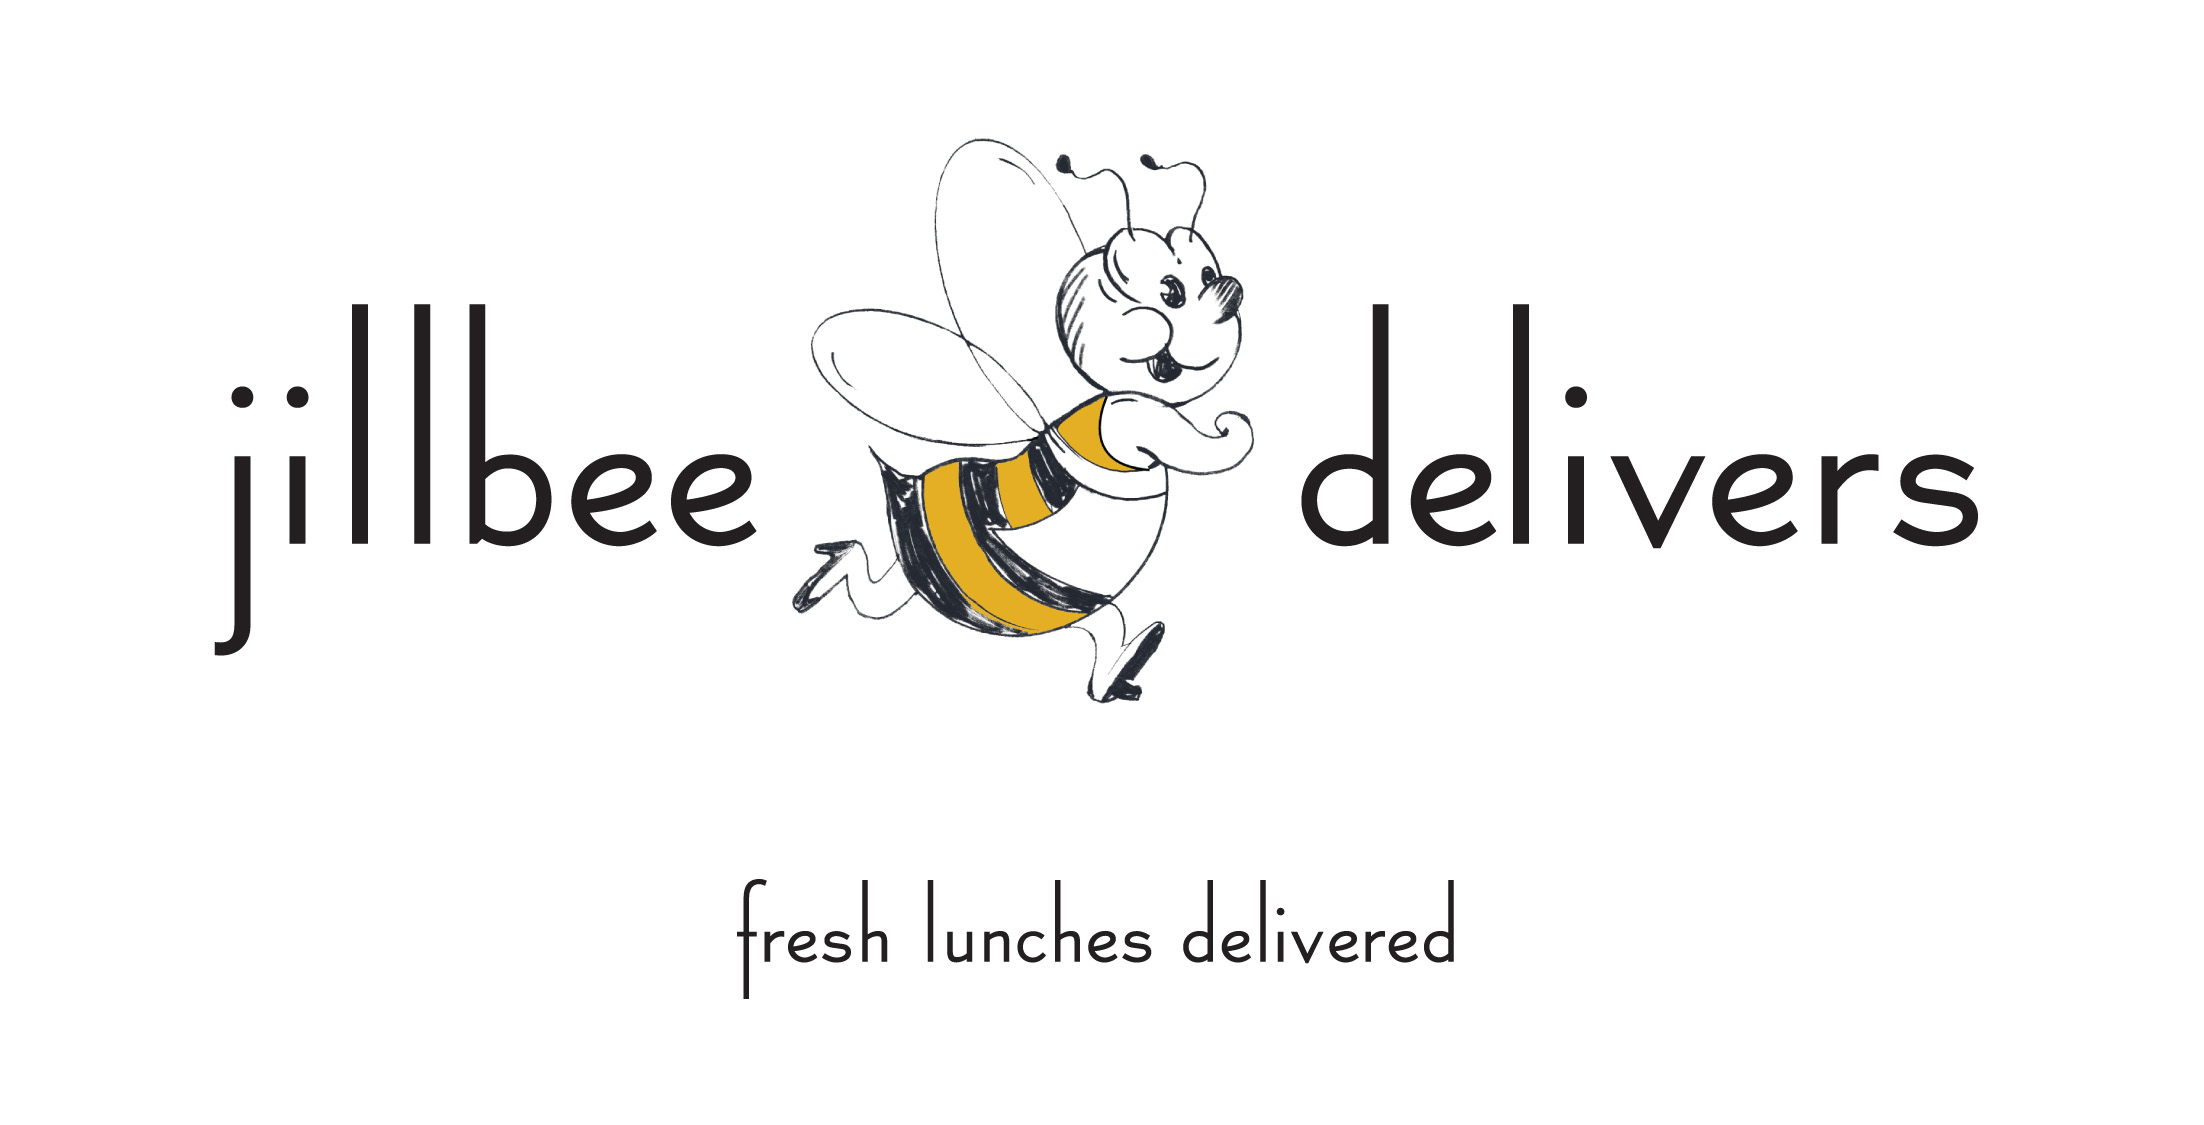 Jillbee Fresh Lunches Delivered.